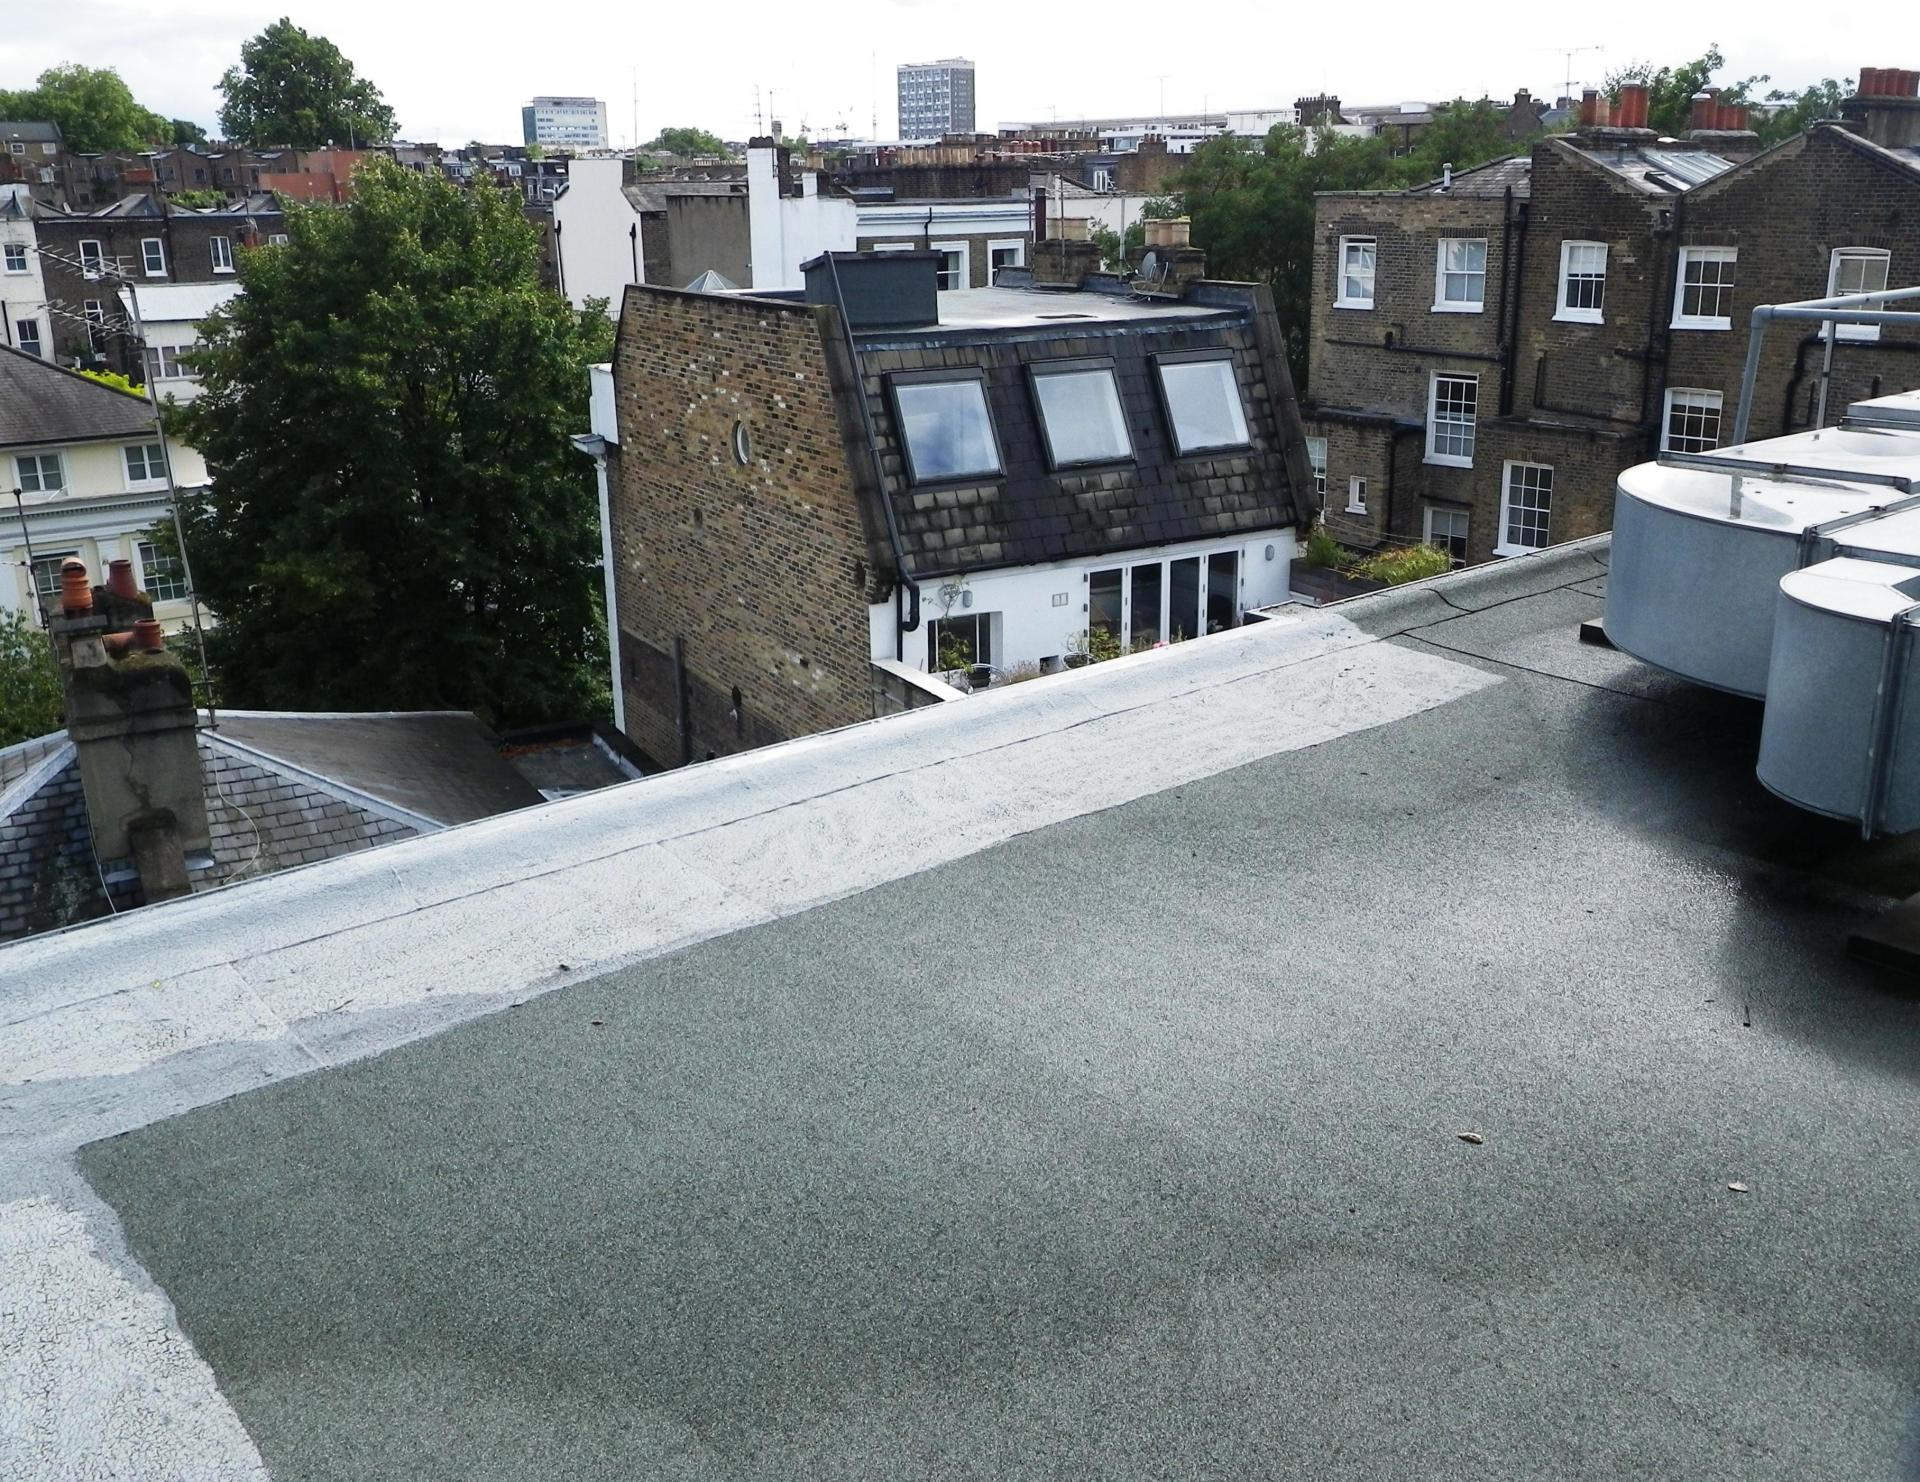 Aerial roof survey of West London property using a camera mounted on a telescopic pole